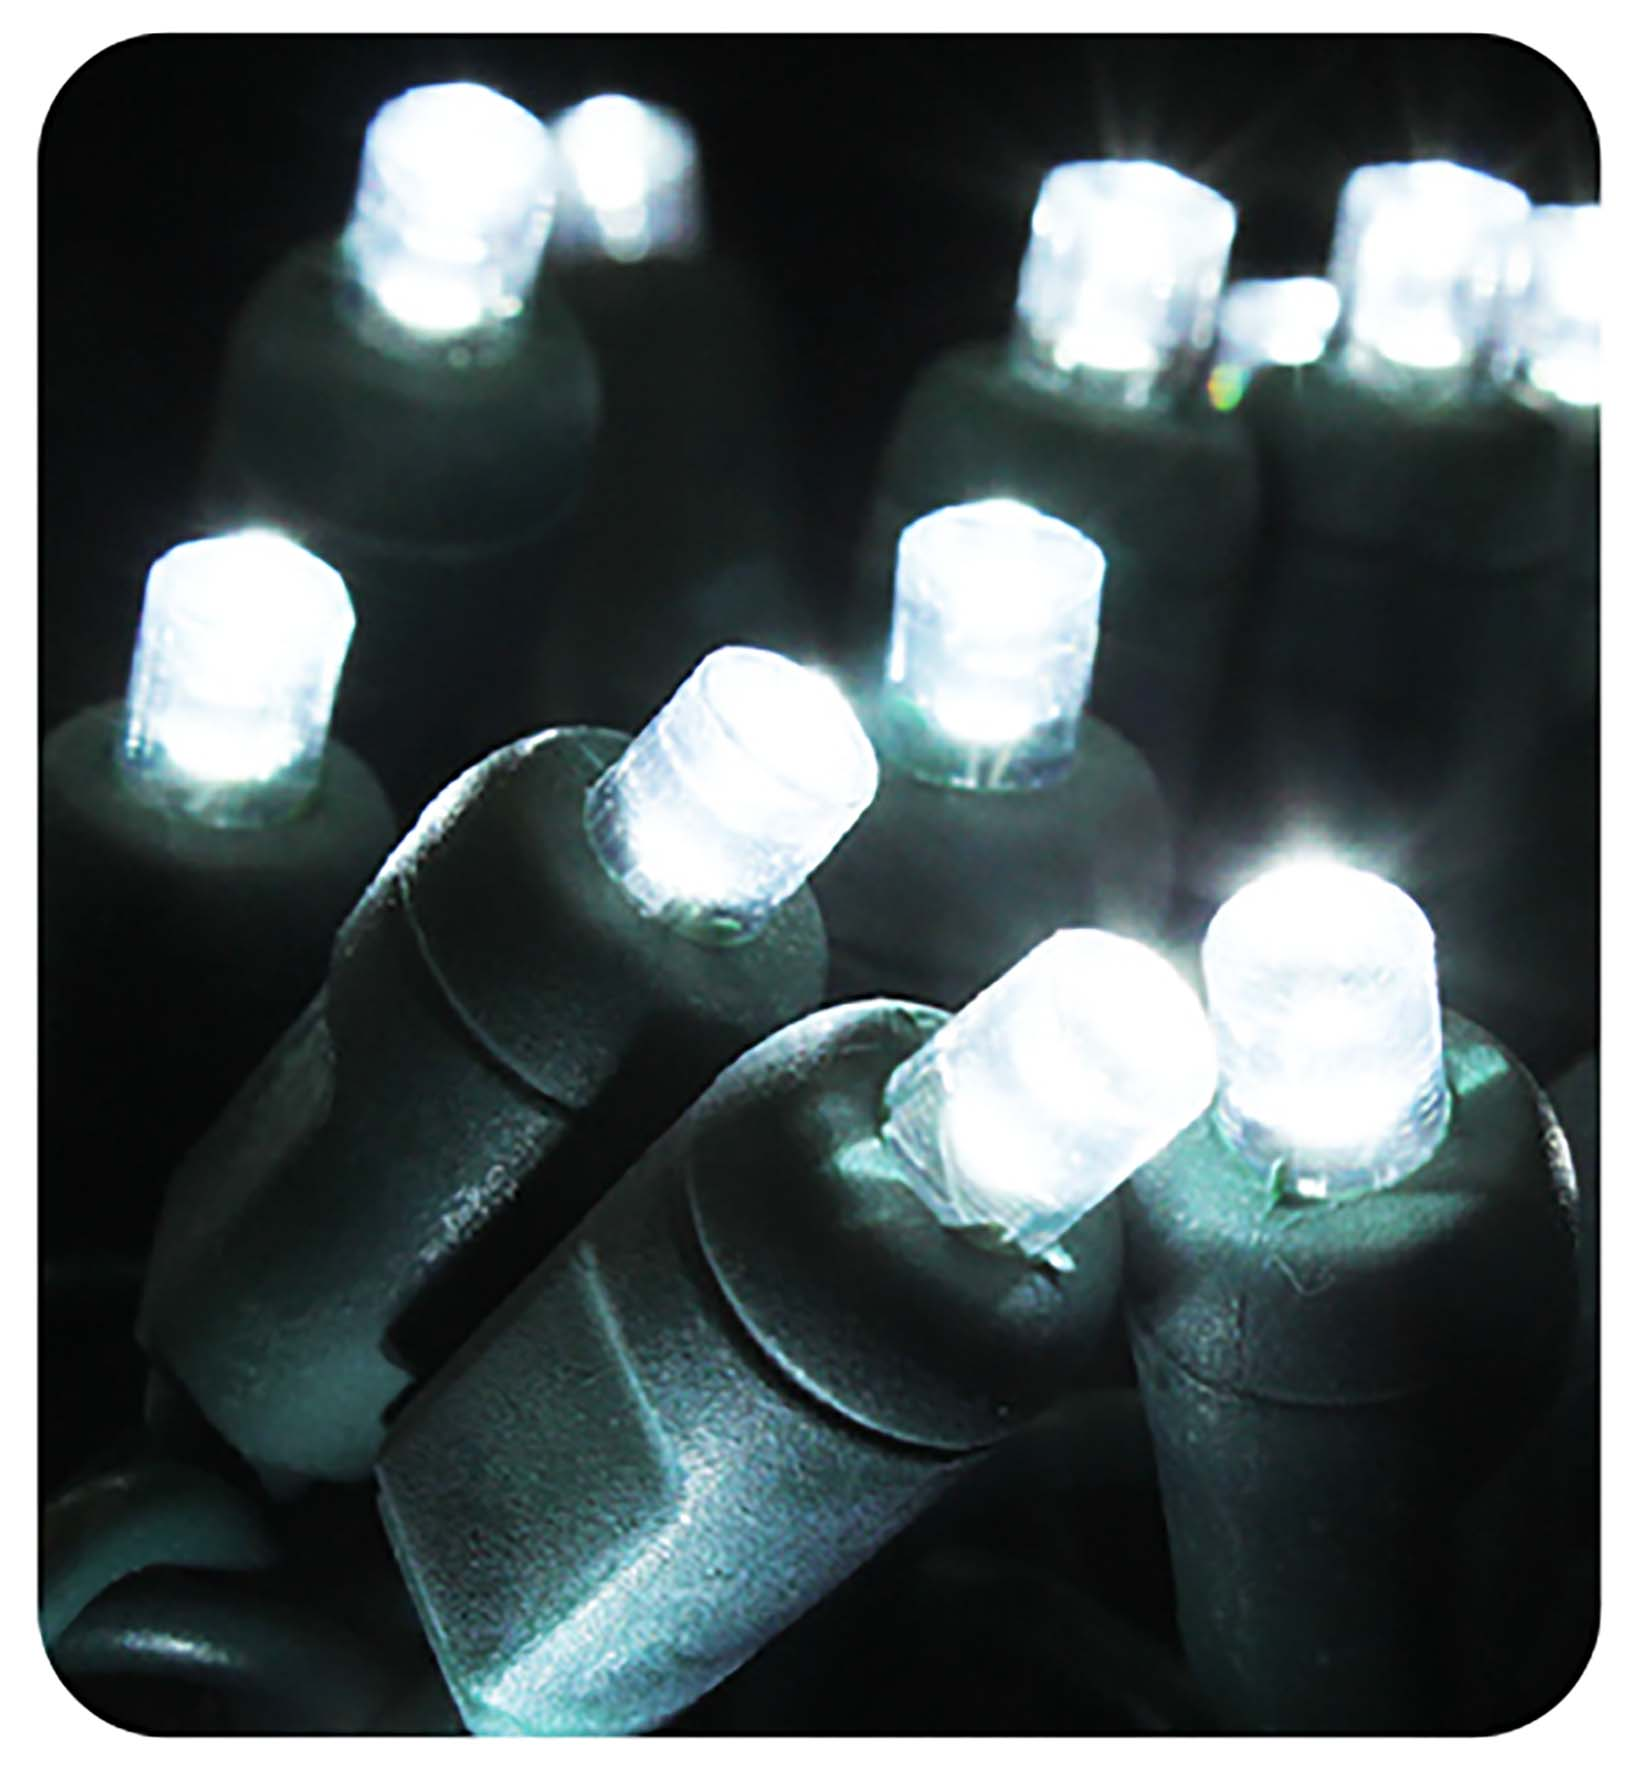 M5 Wide Angle LED mini lights